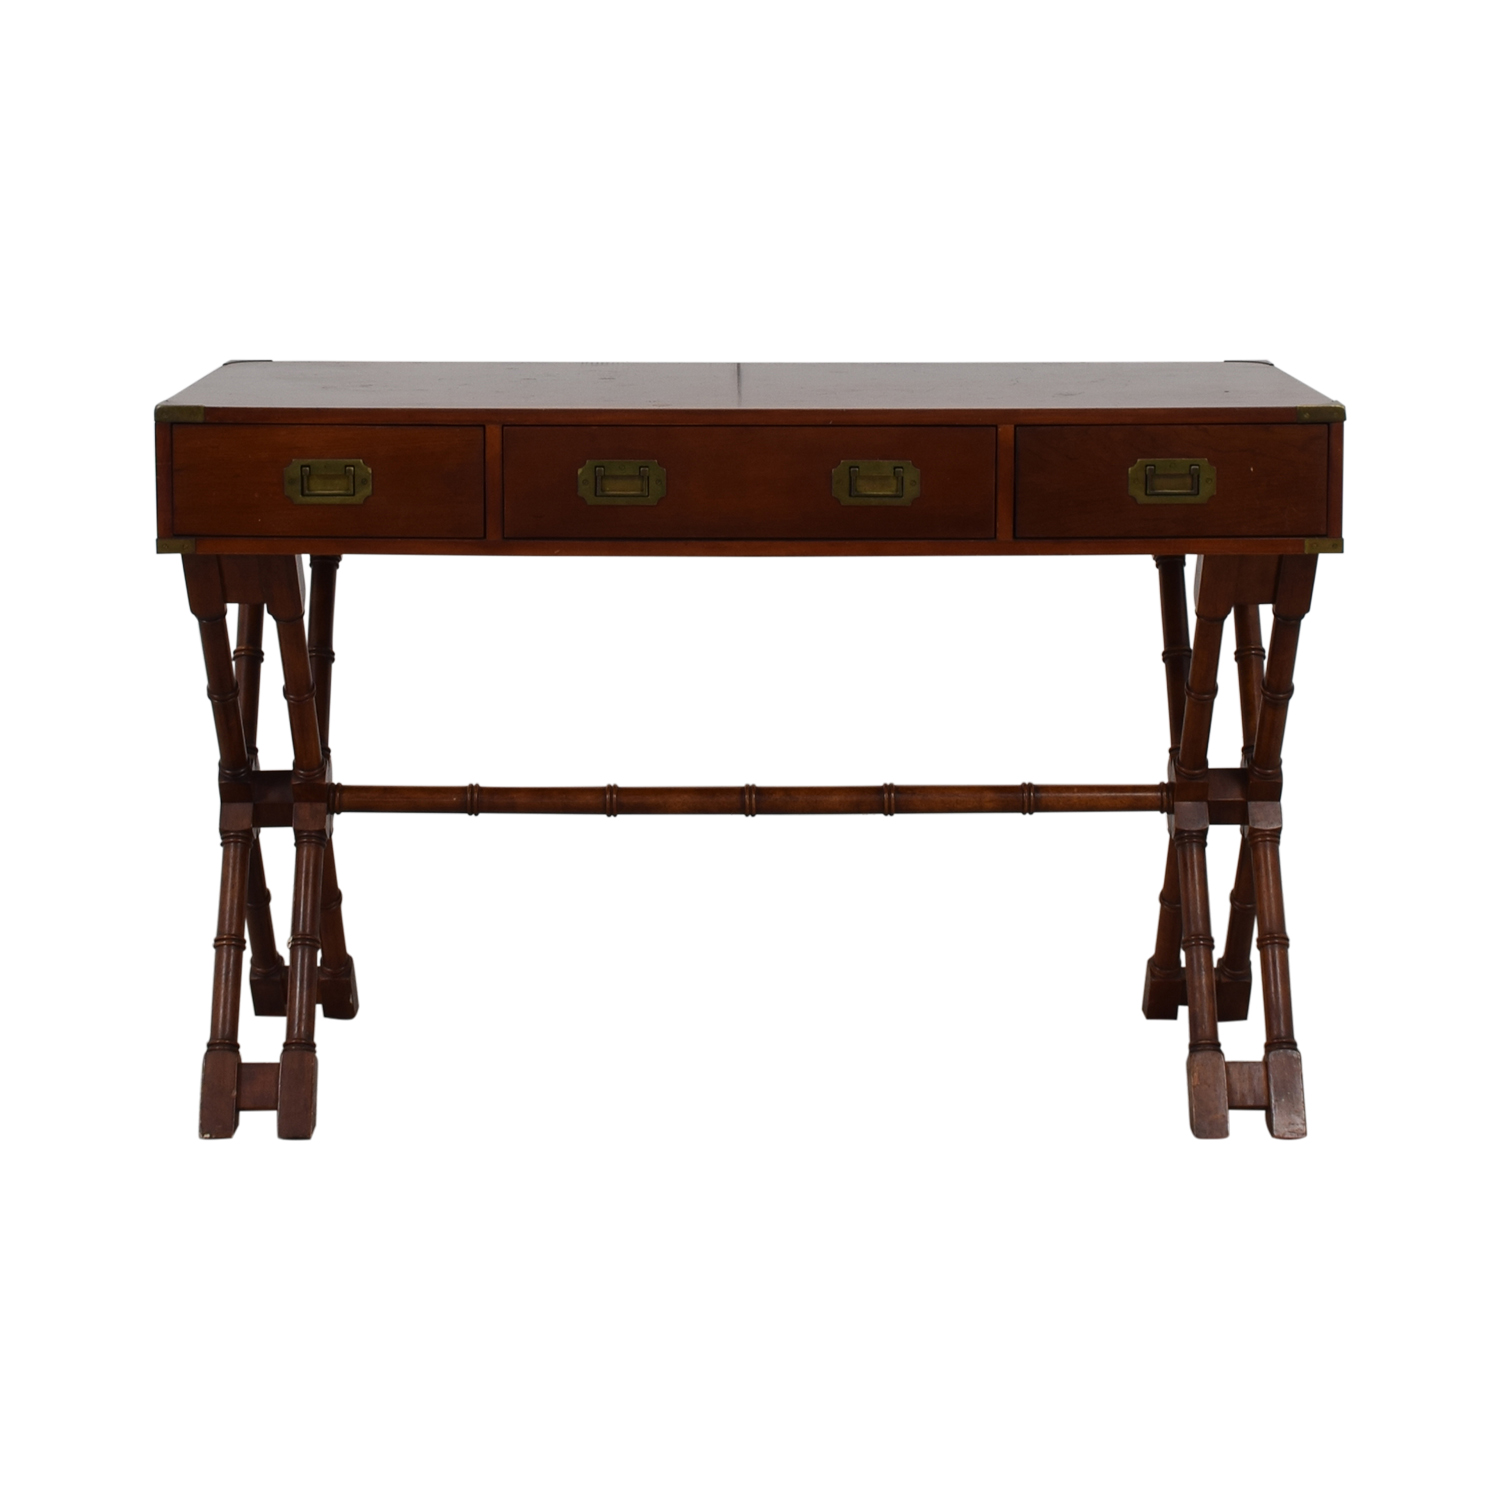 Bombay Company Bombay Company Three-Drawer Desk discount